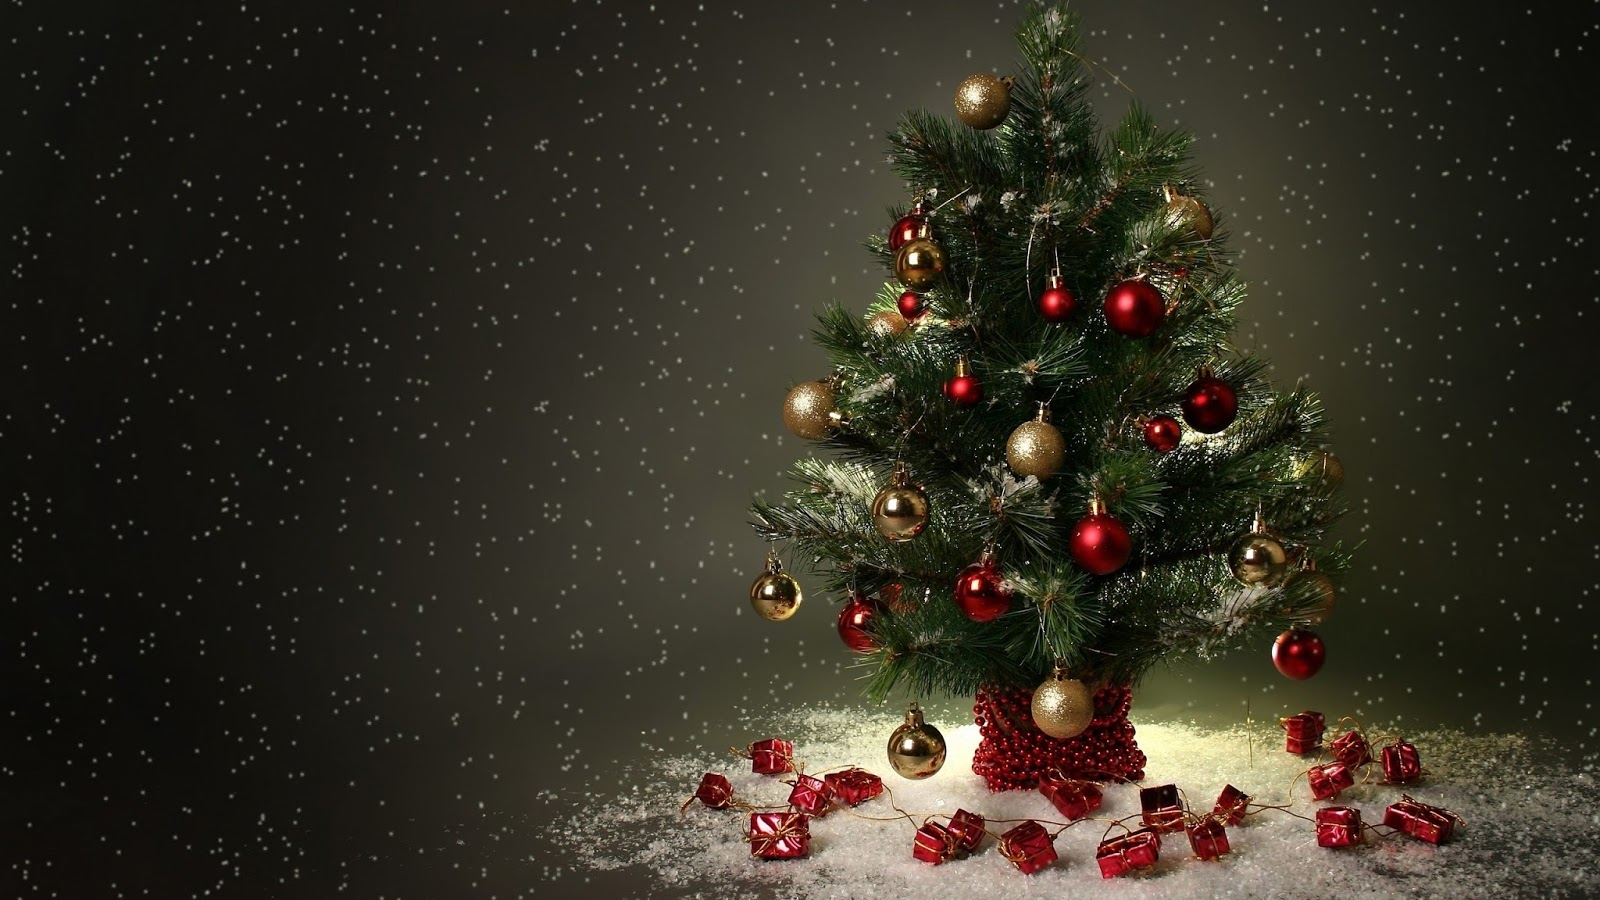 Merry Christmas Tree HD Images Photos Wallpapers Pictures Image For Hd Day 2017